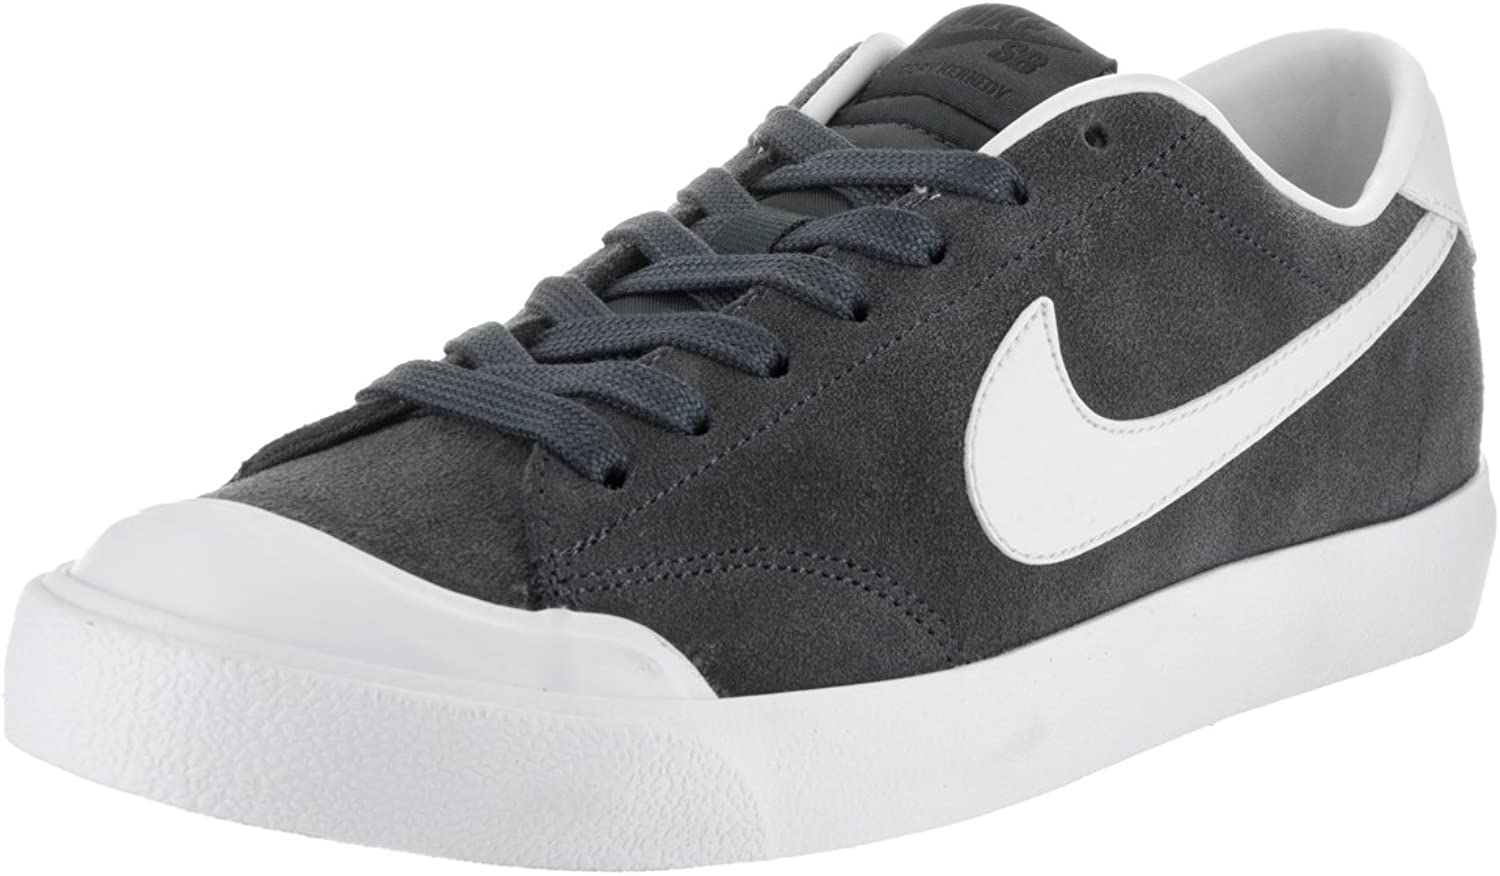 Nike Zoom All Court CK - 806306-001 - Size 9.5